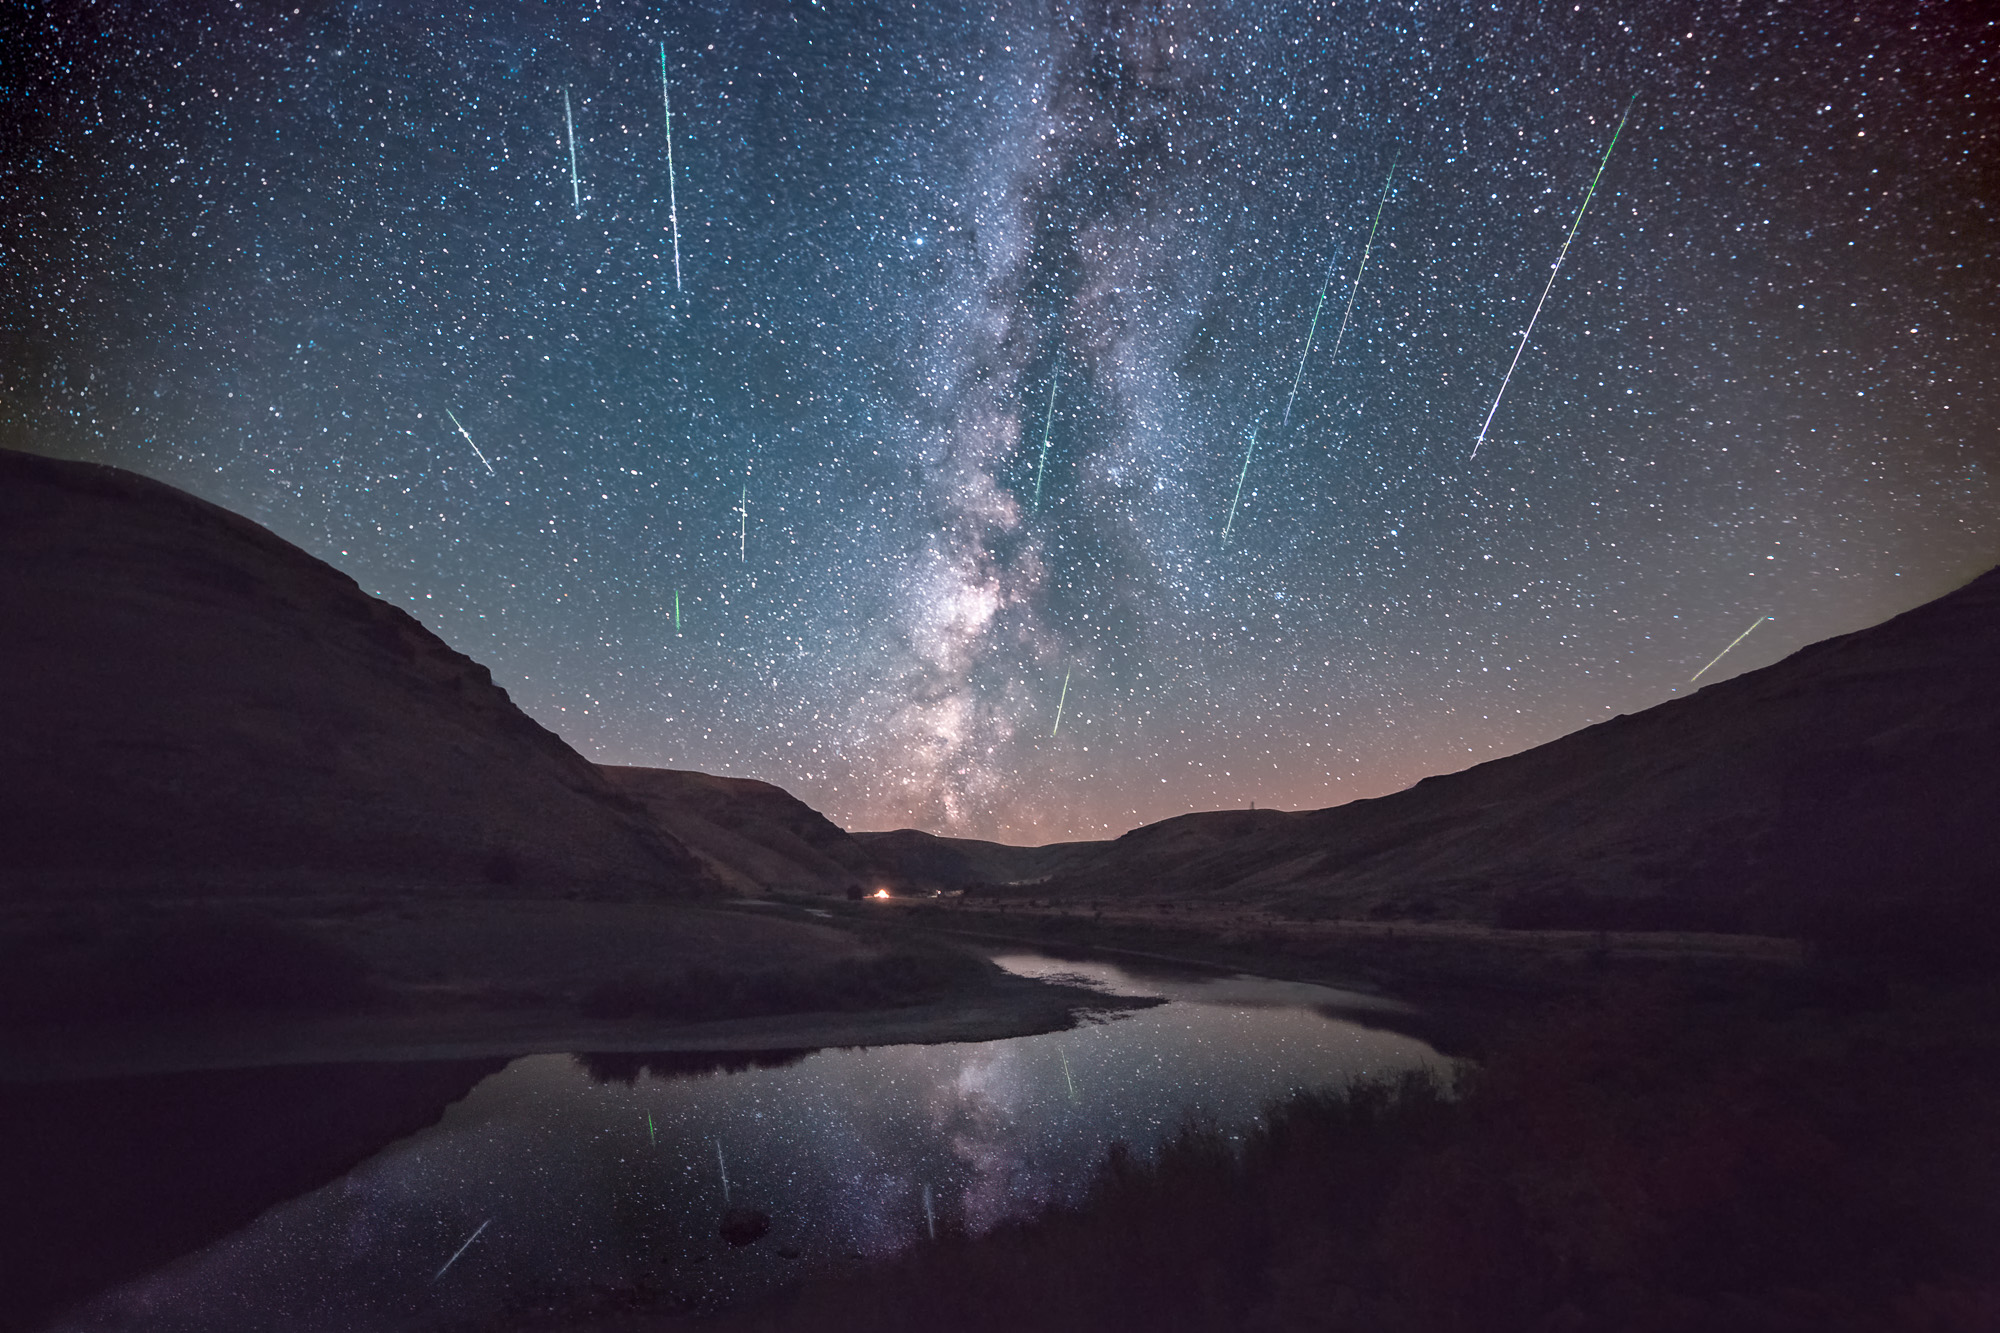 Milky Way rising above Cottonwood Canyon. OR and the John Day River with the streaking light of the Perseid Meteor shower